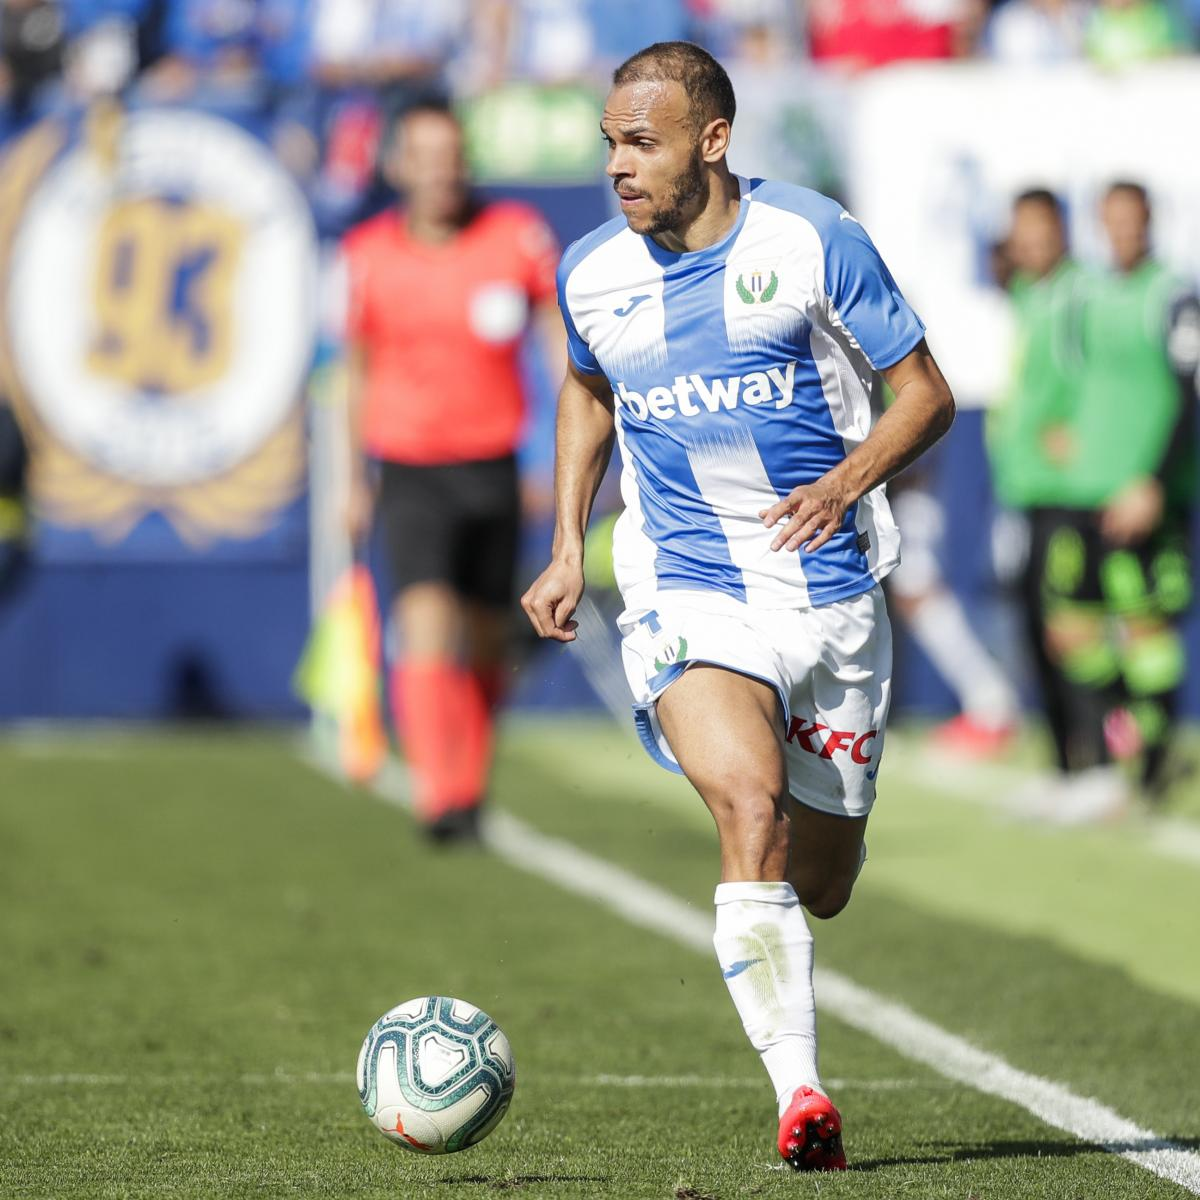 Report: Barcelona Closing in on Martin Braithwaite; Deal Could Be Done This Week